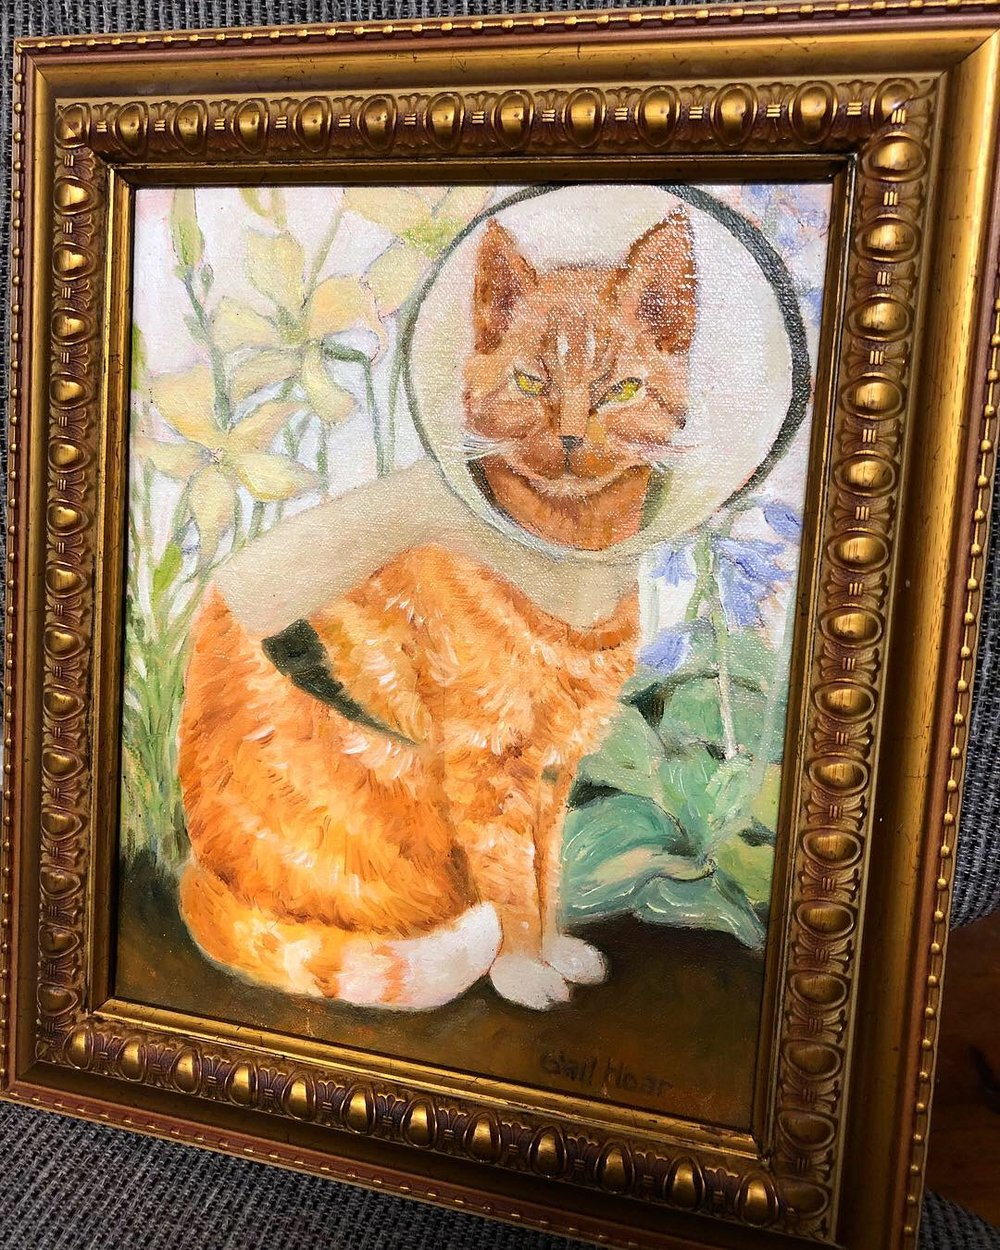 In memory of jimmy kitty cone cat, our beloved unofficial Andy's mascot, we have this painting, done by gail hoar.    Value: Priceless